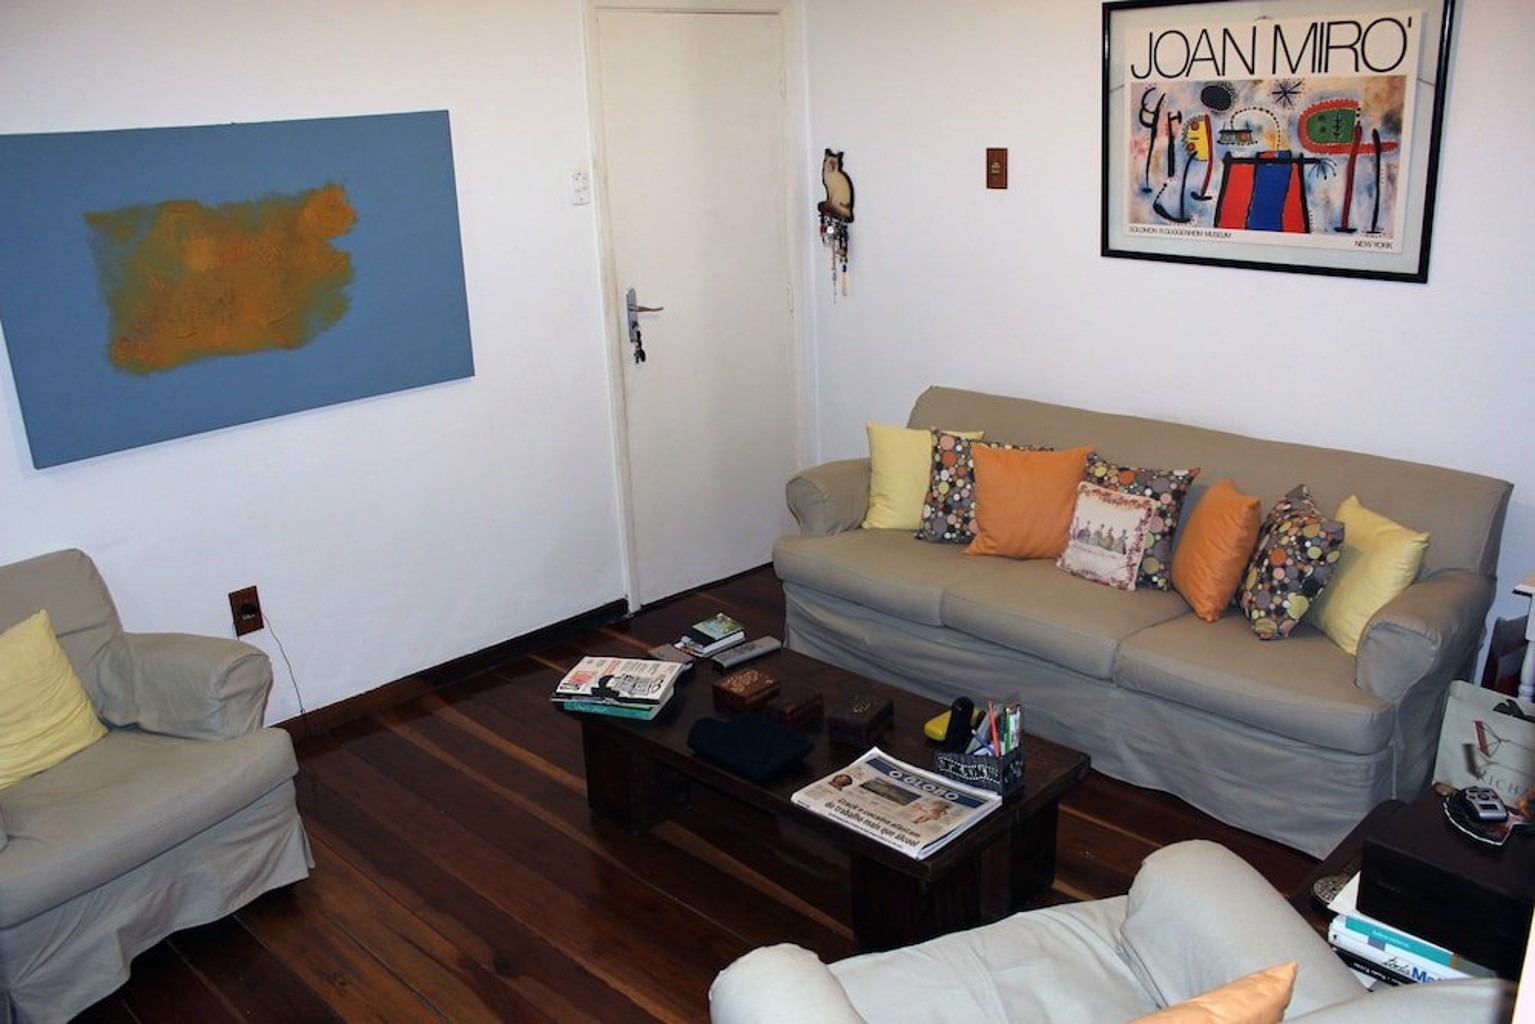 Bed and Breakfast Botafogo Lilian